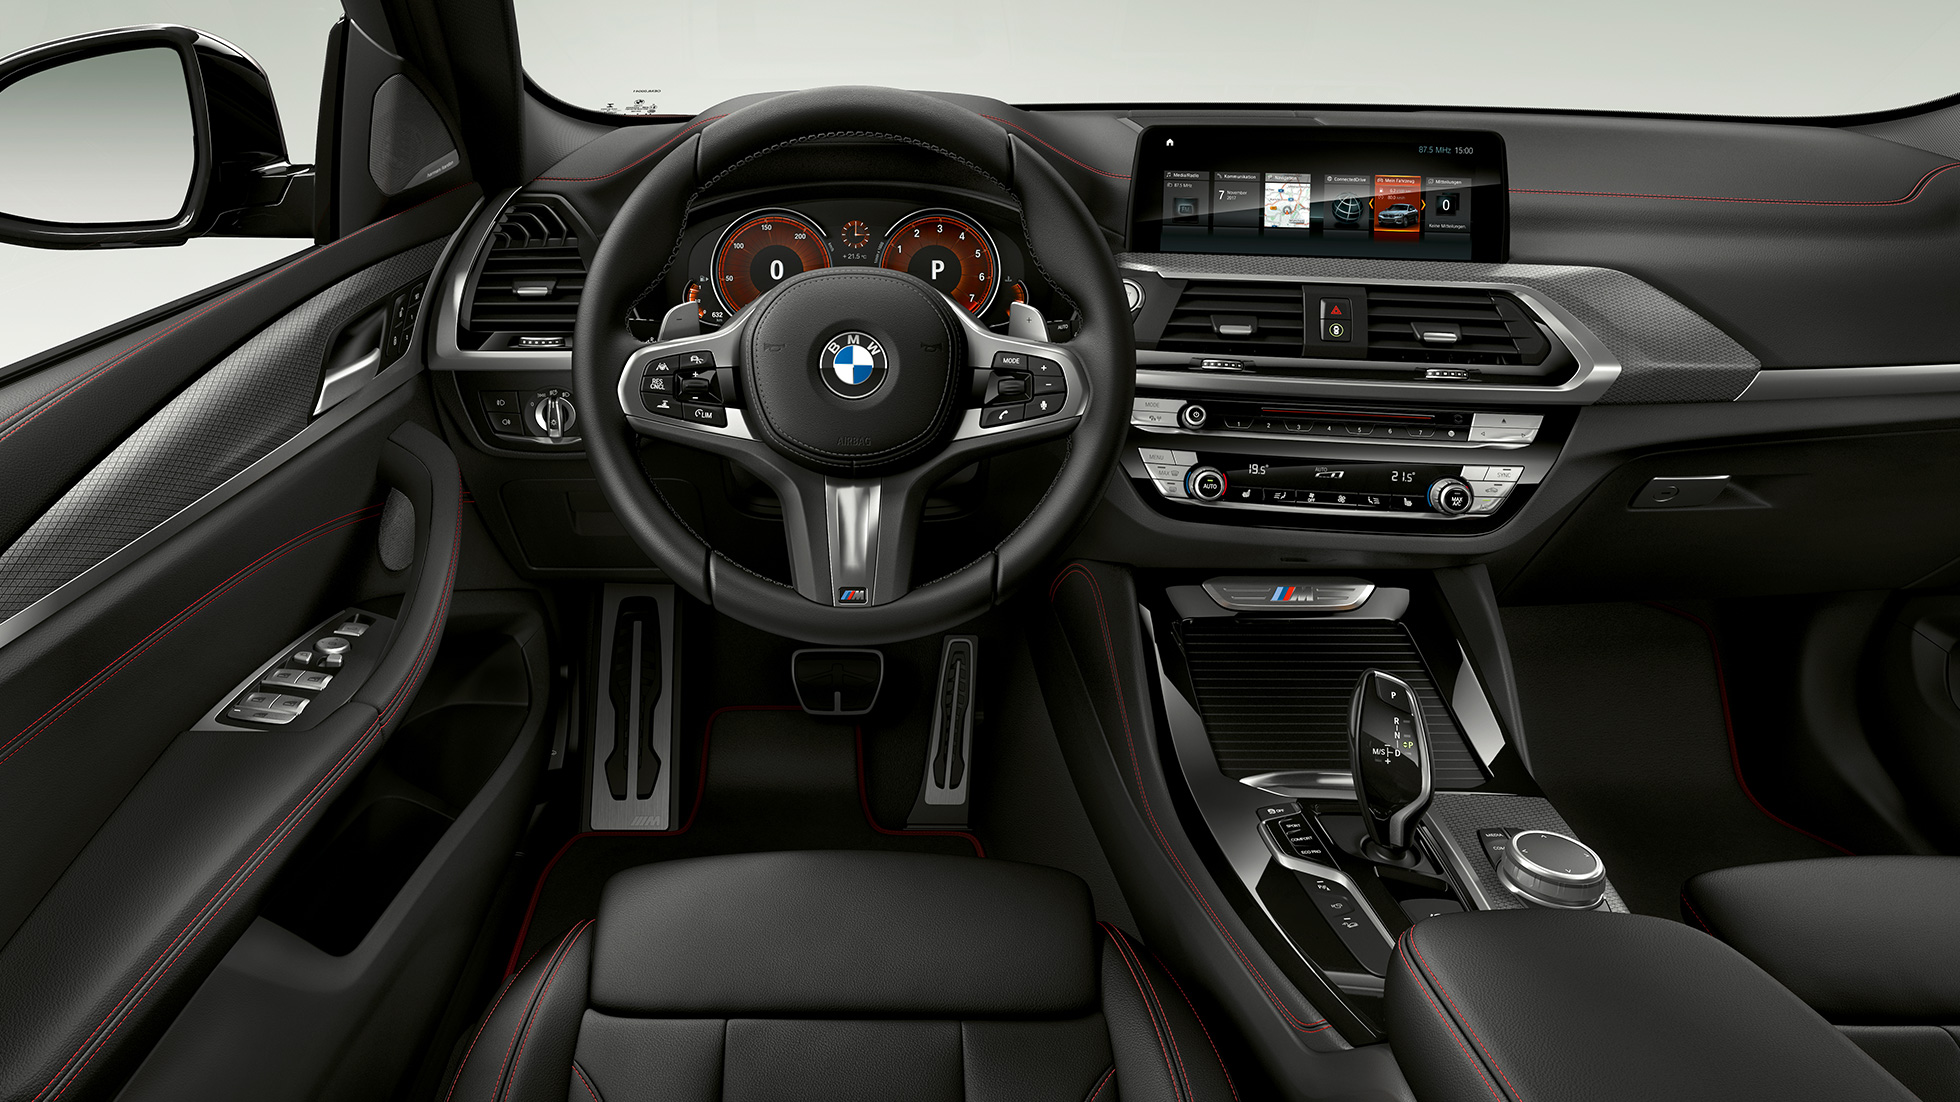 BMW X4 M40i, interior, cockpit with sport seats and M leather steering wheel.